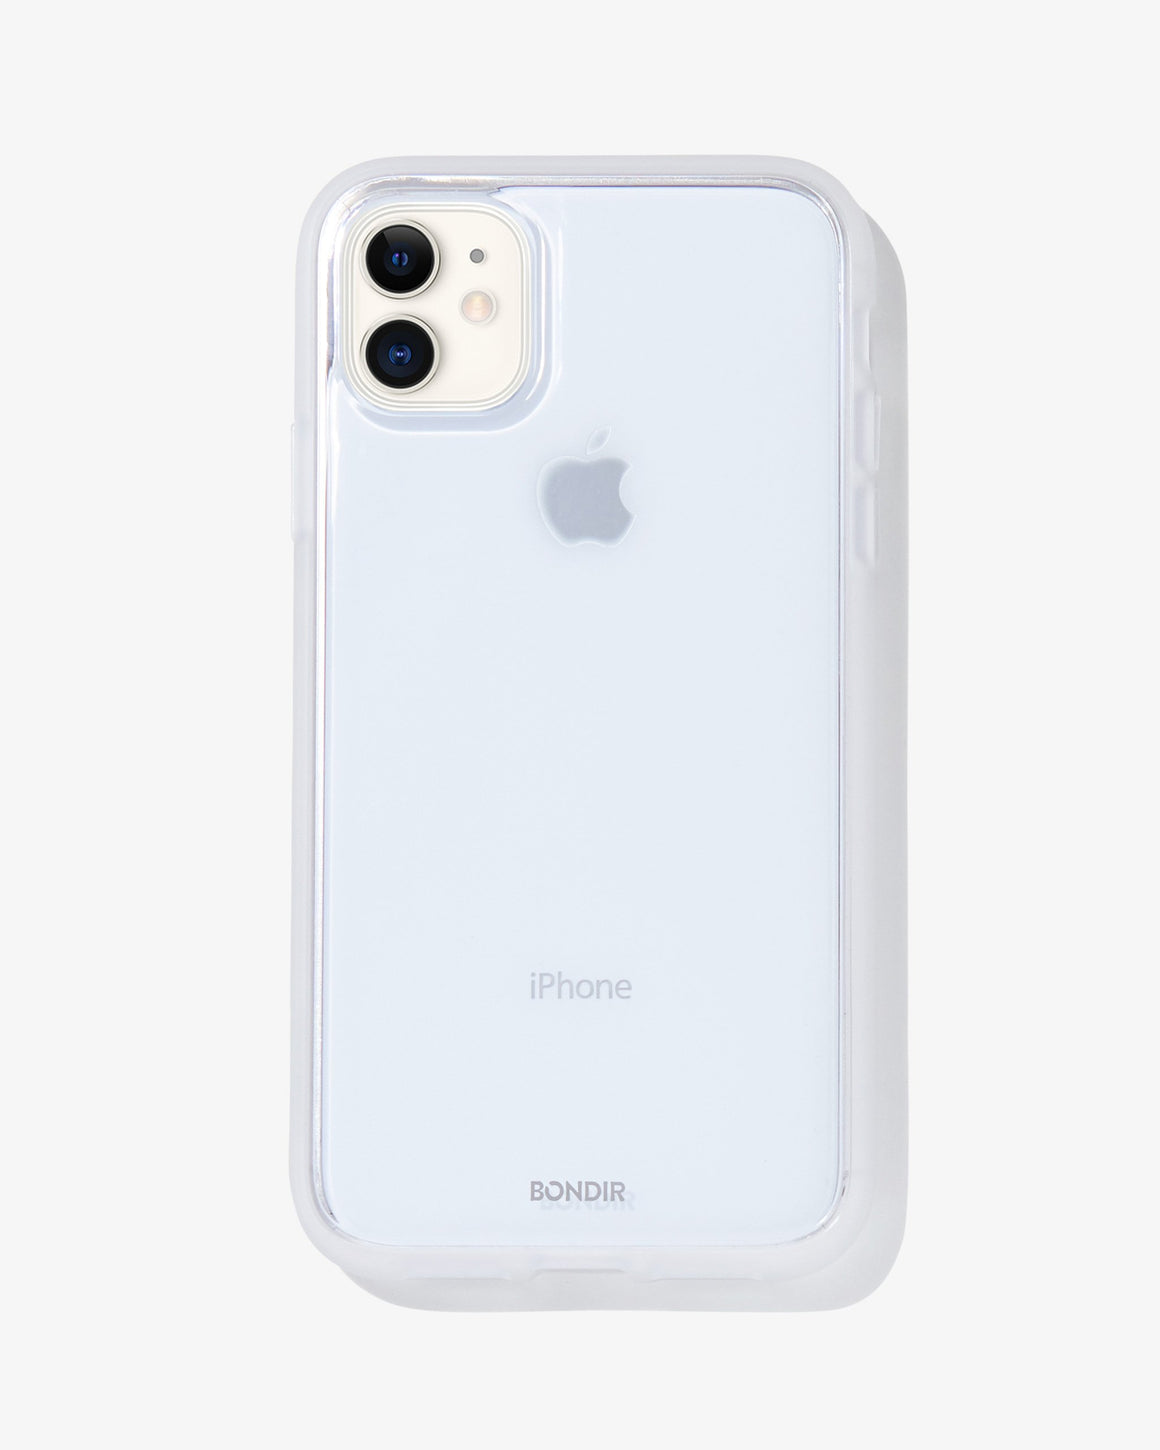 Clear Bondir iPhone Case